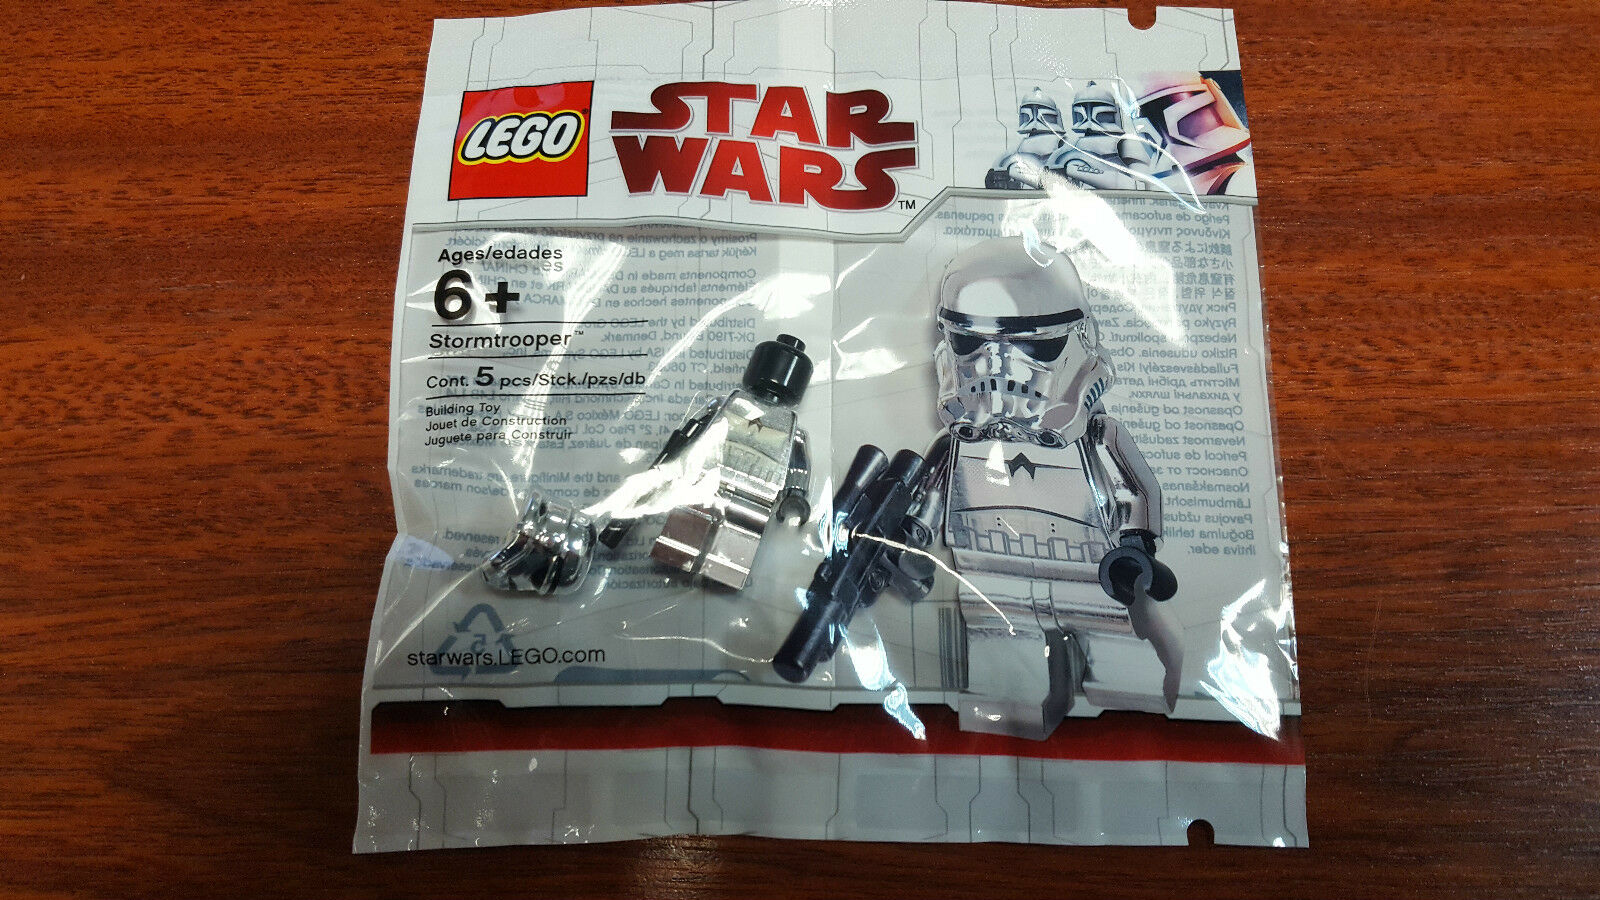 LEGO STAR WARS Minifig  CHROME STORMTROOPER  Polybag 4591726 Minifigure NEW RARE